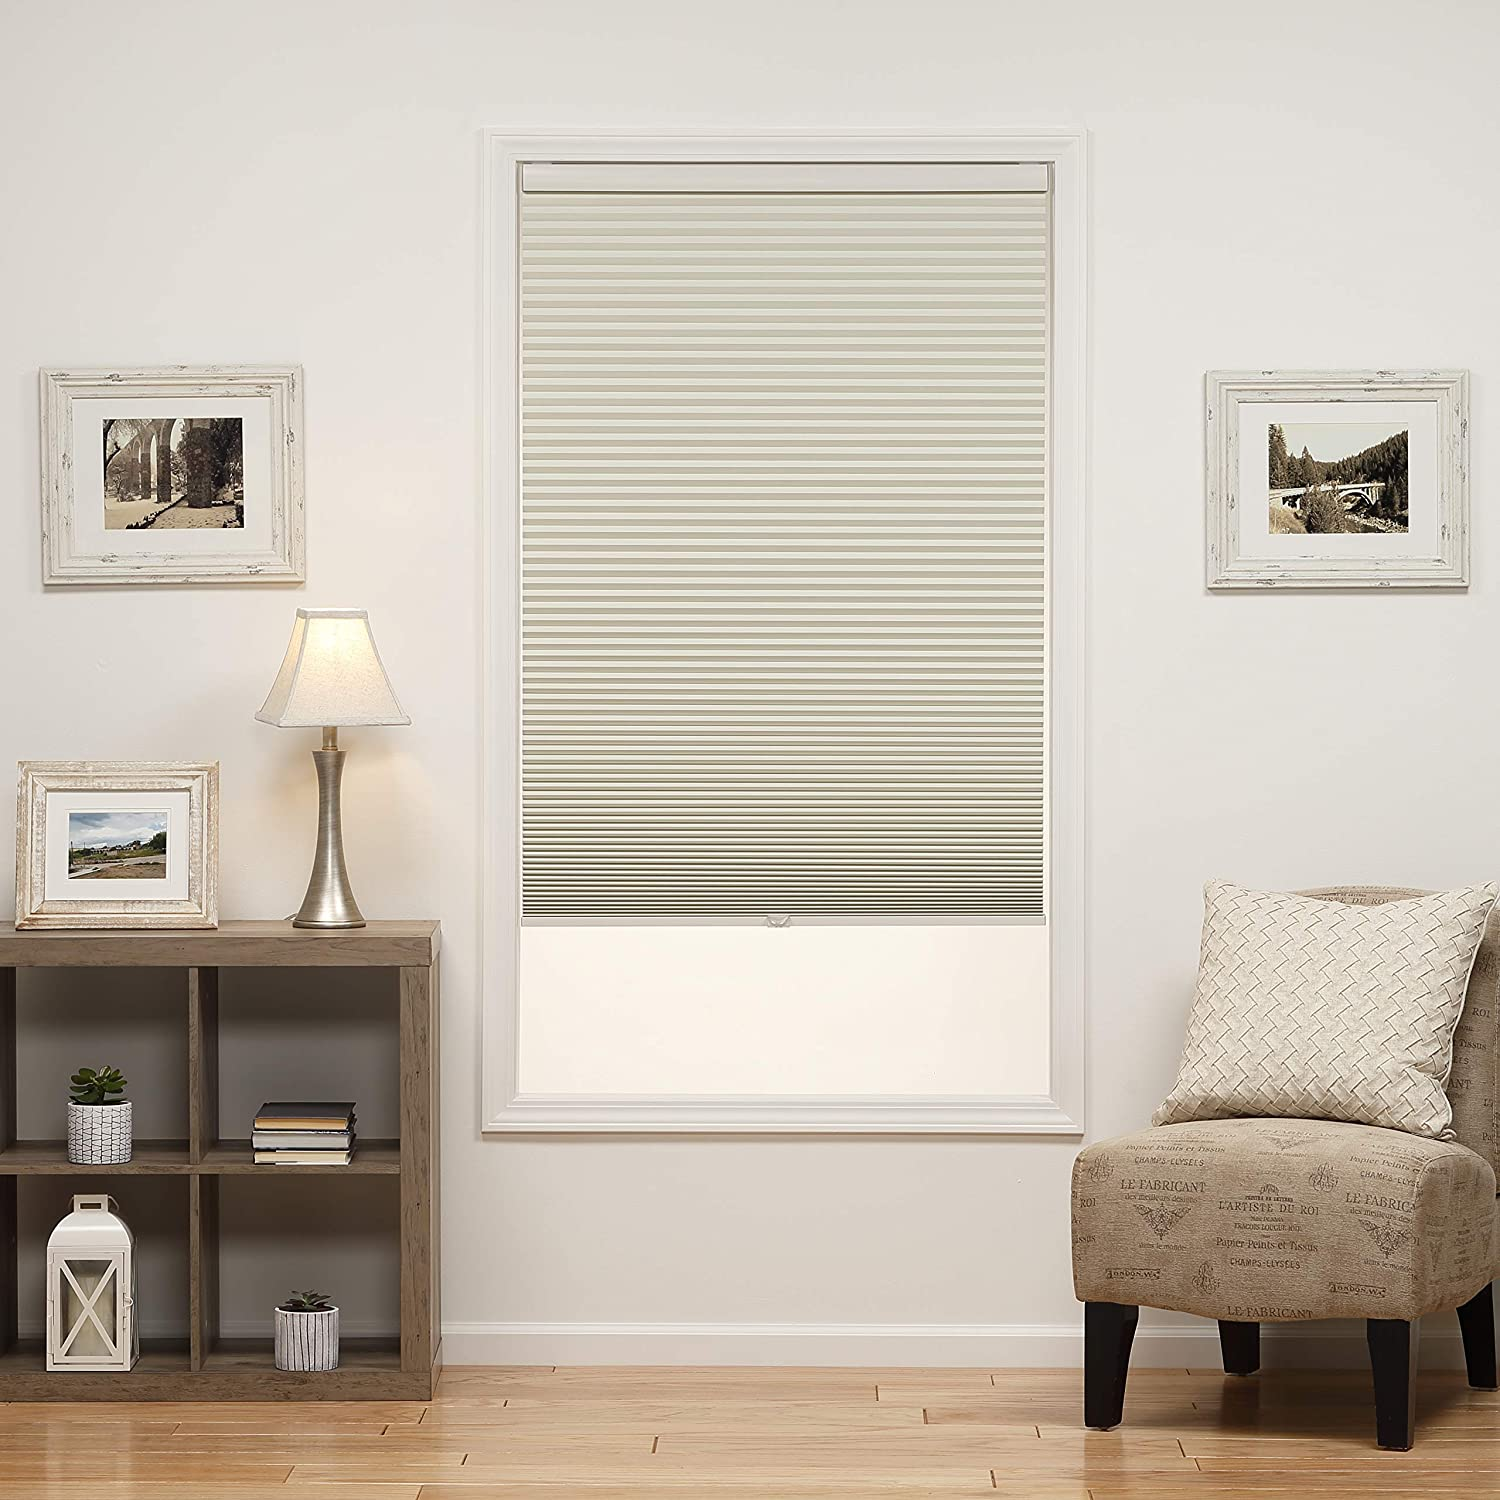 DEZ San Jose Mall Furnishings QECRWT200480 Online limited product Cordless 2 Blackout Shade Cellular